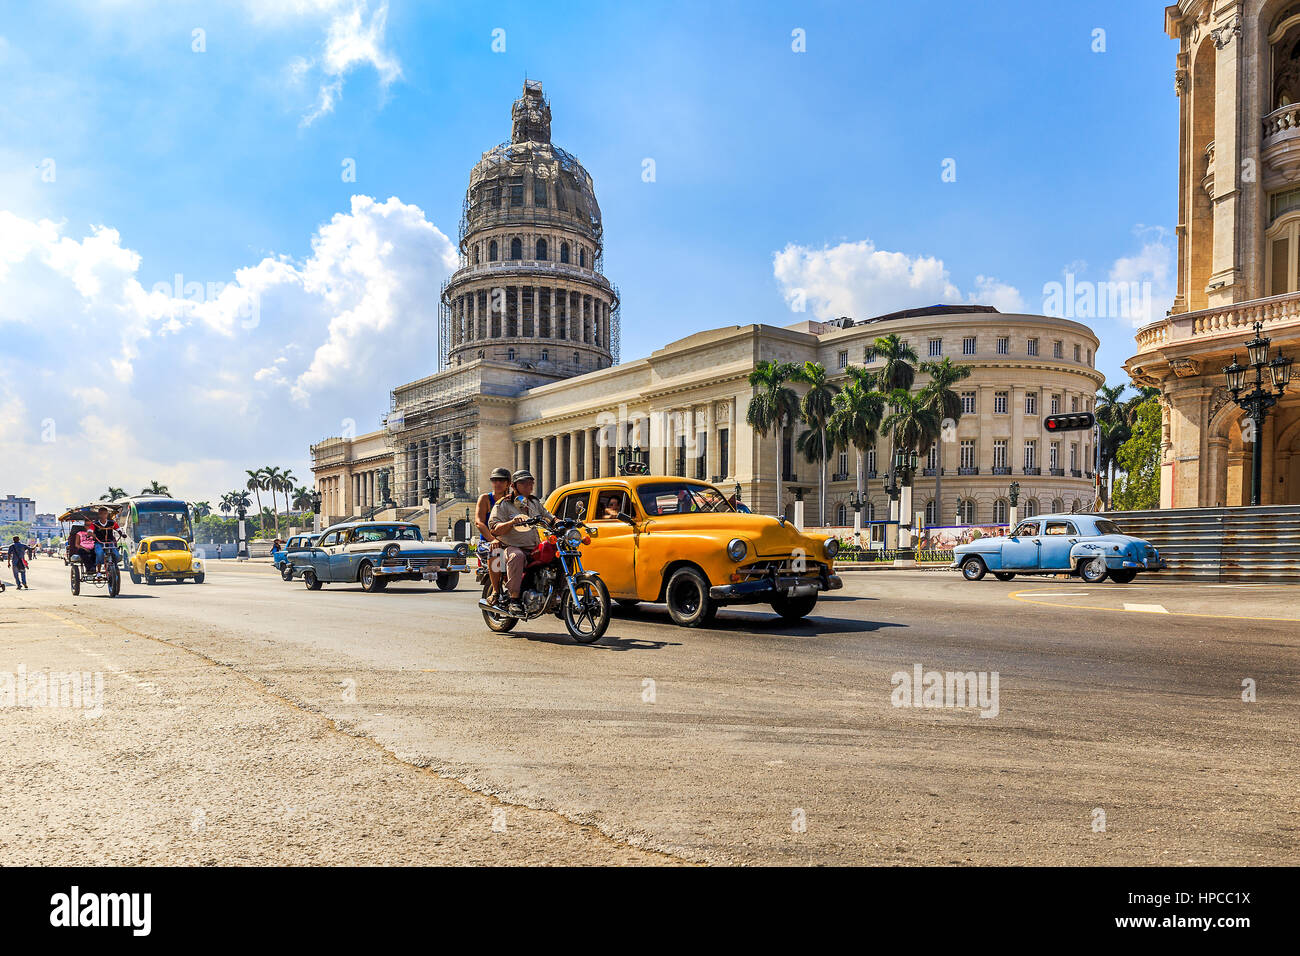 Oldtimer in front of the Capitolio Havana, the capital city of Cuba - Stock Image